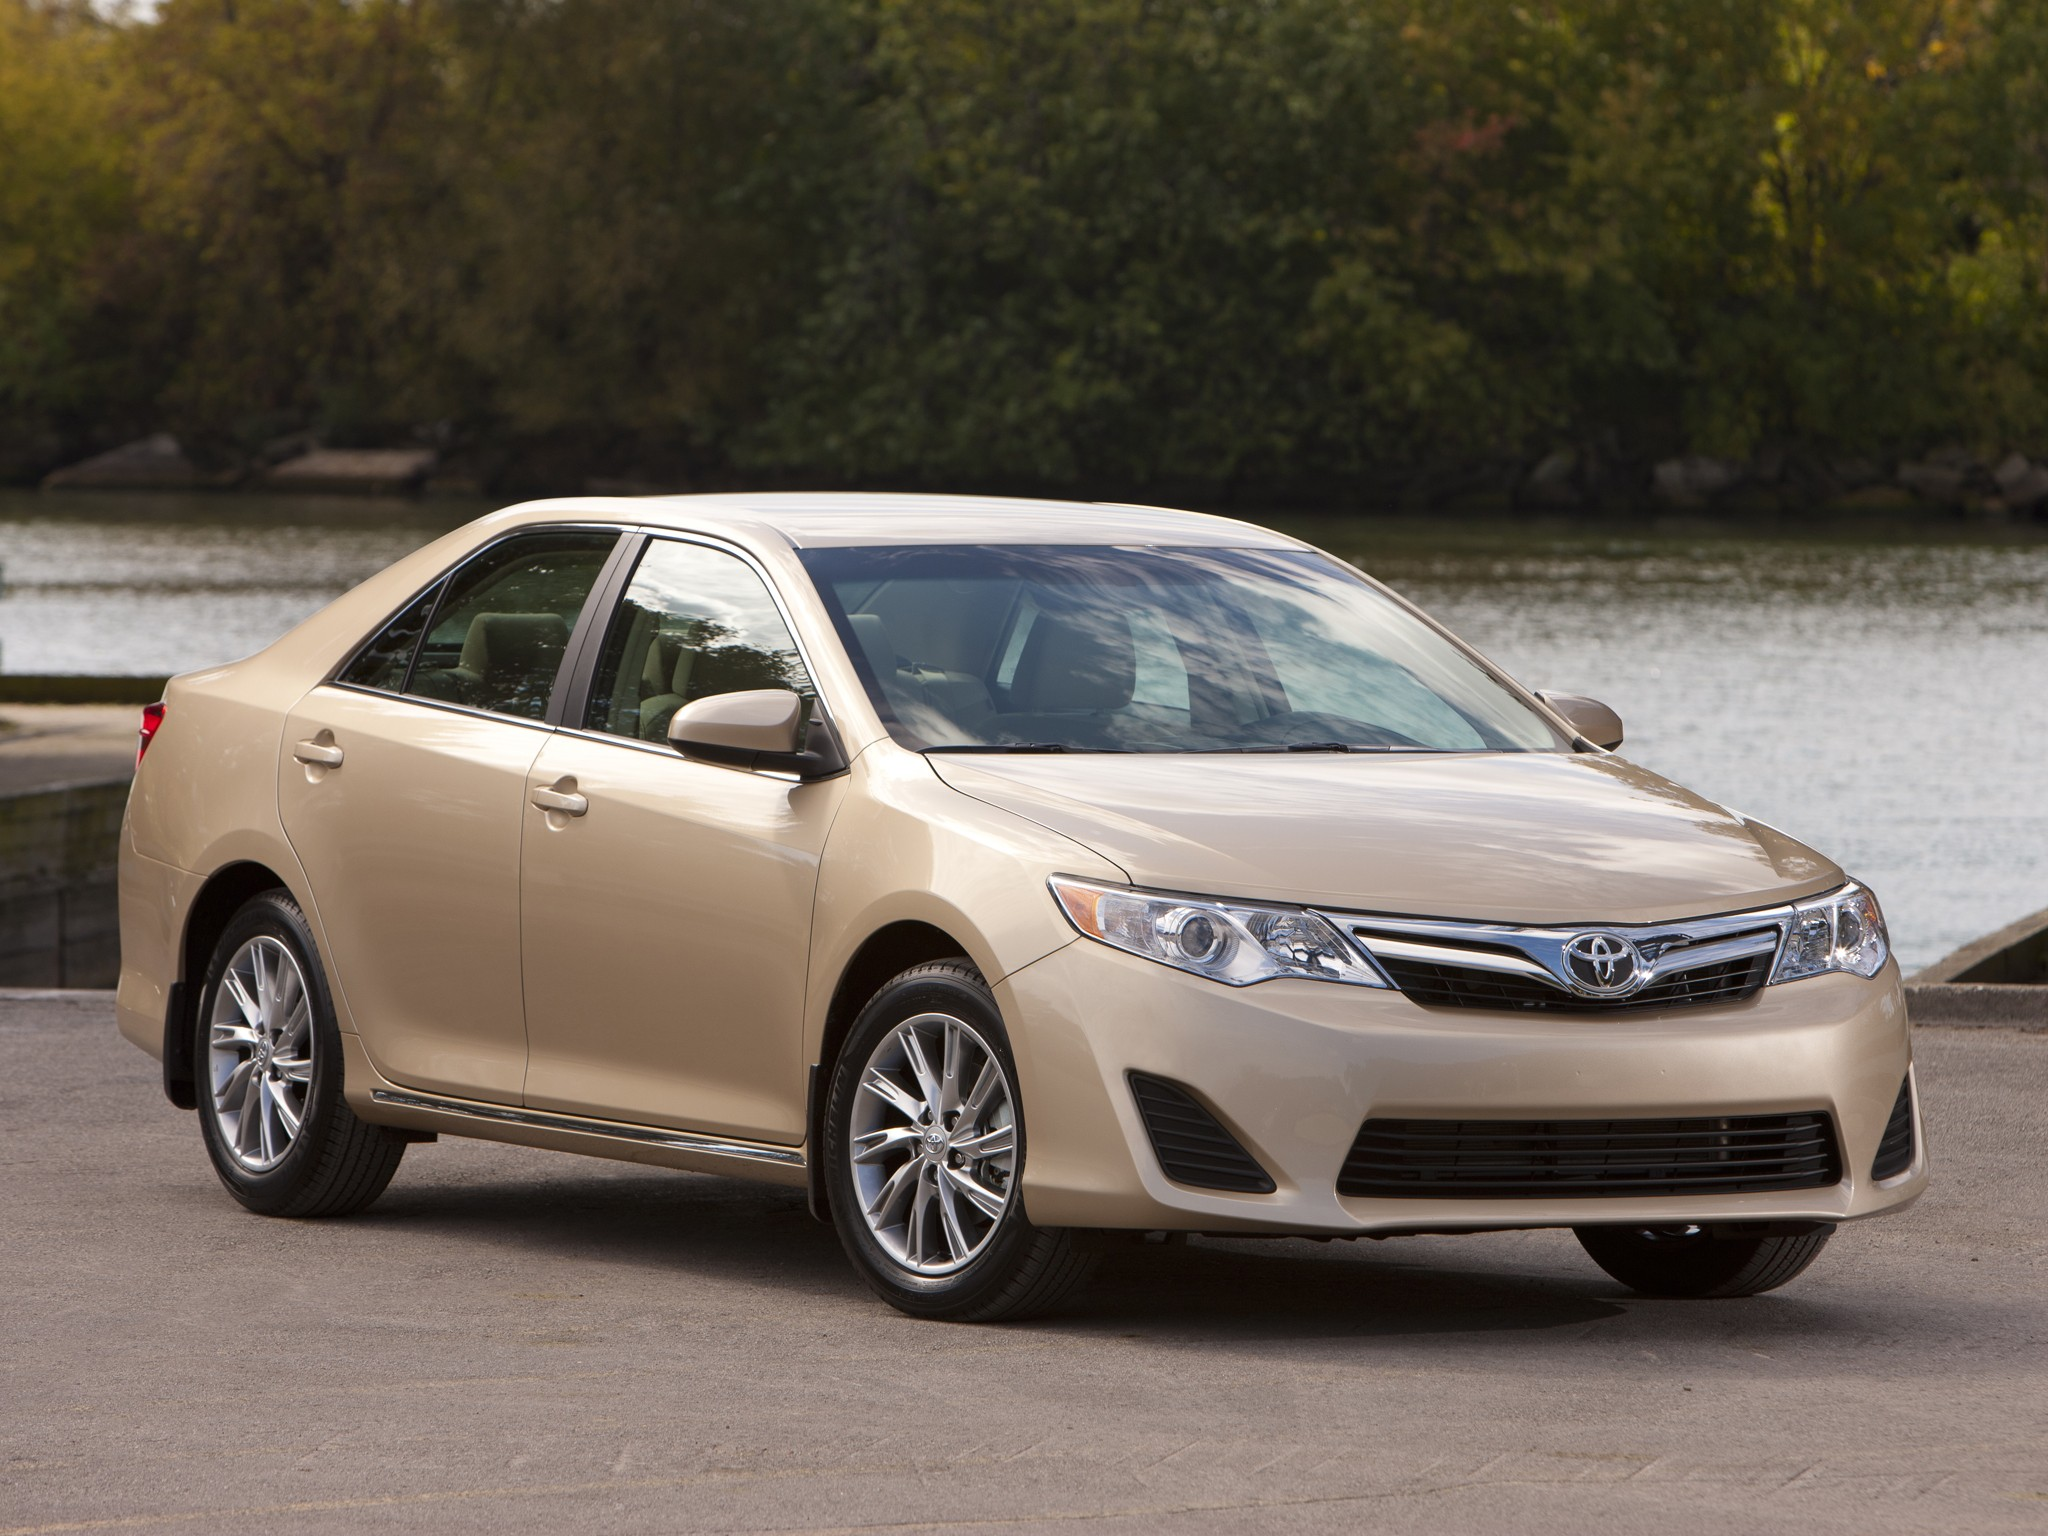 toyota camry specs 2011 2012 2013 2014 autoevolution. Black Bedroom Furniture Sets. Home Design Ideas